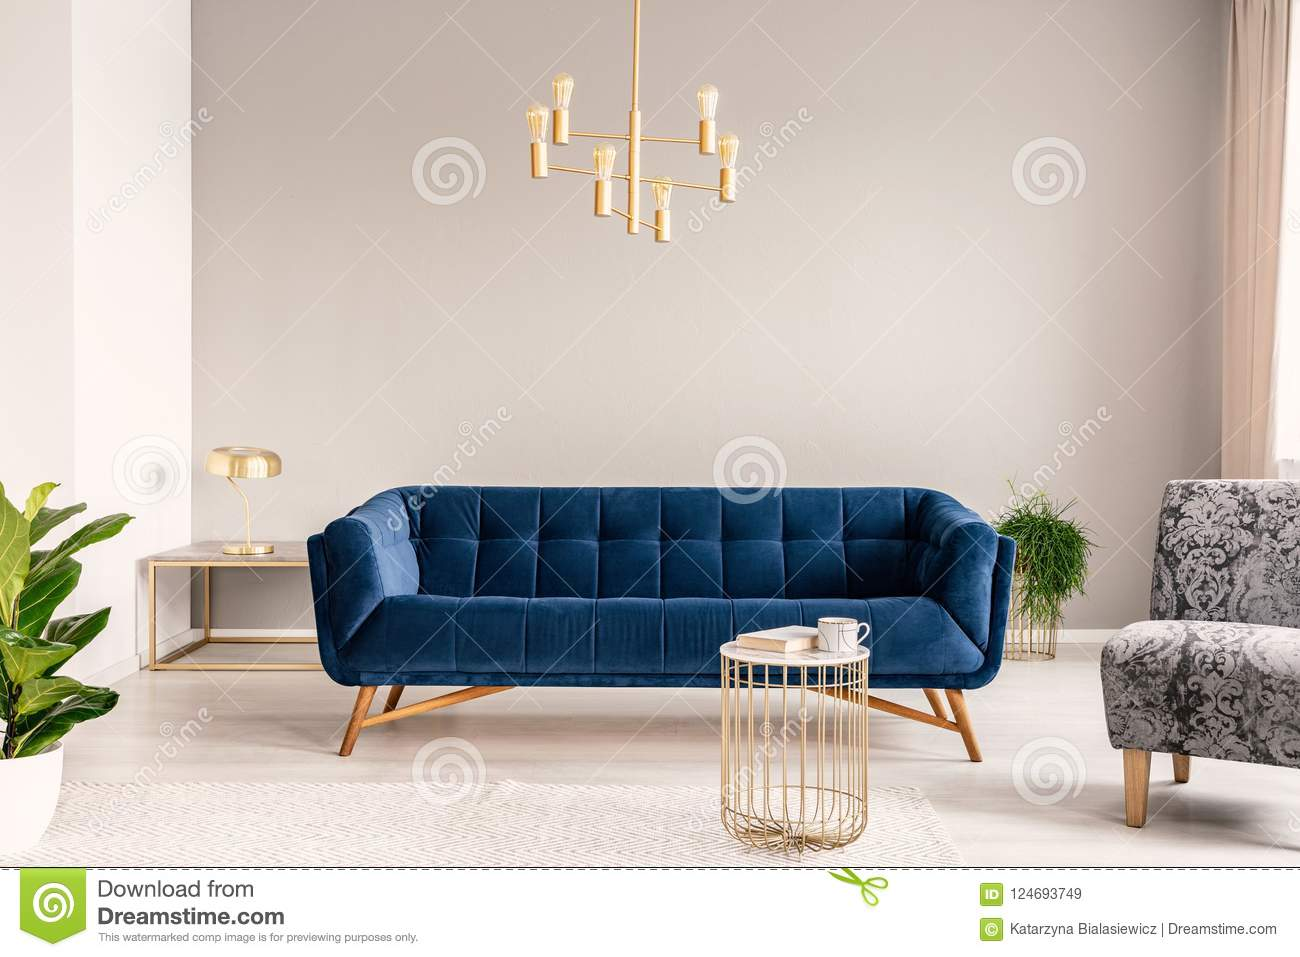 gold lamp hanging above